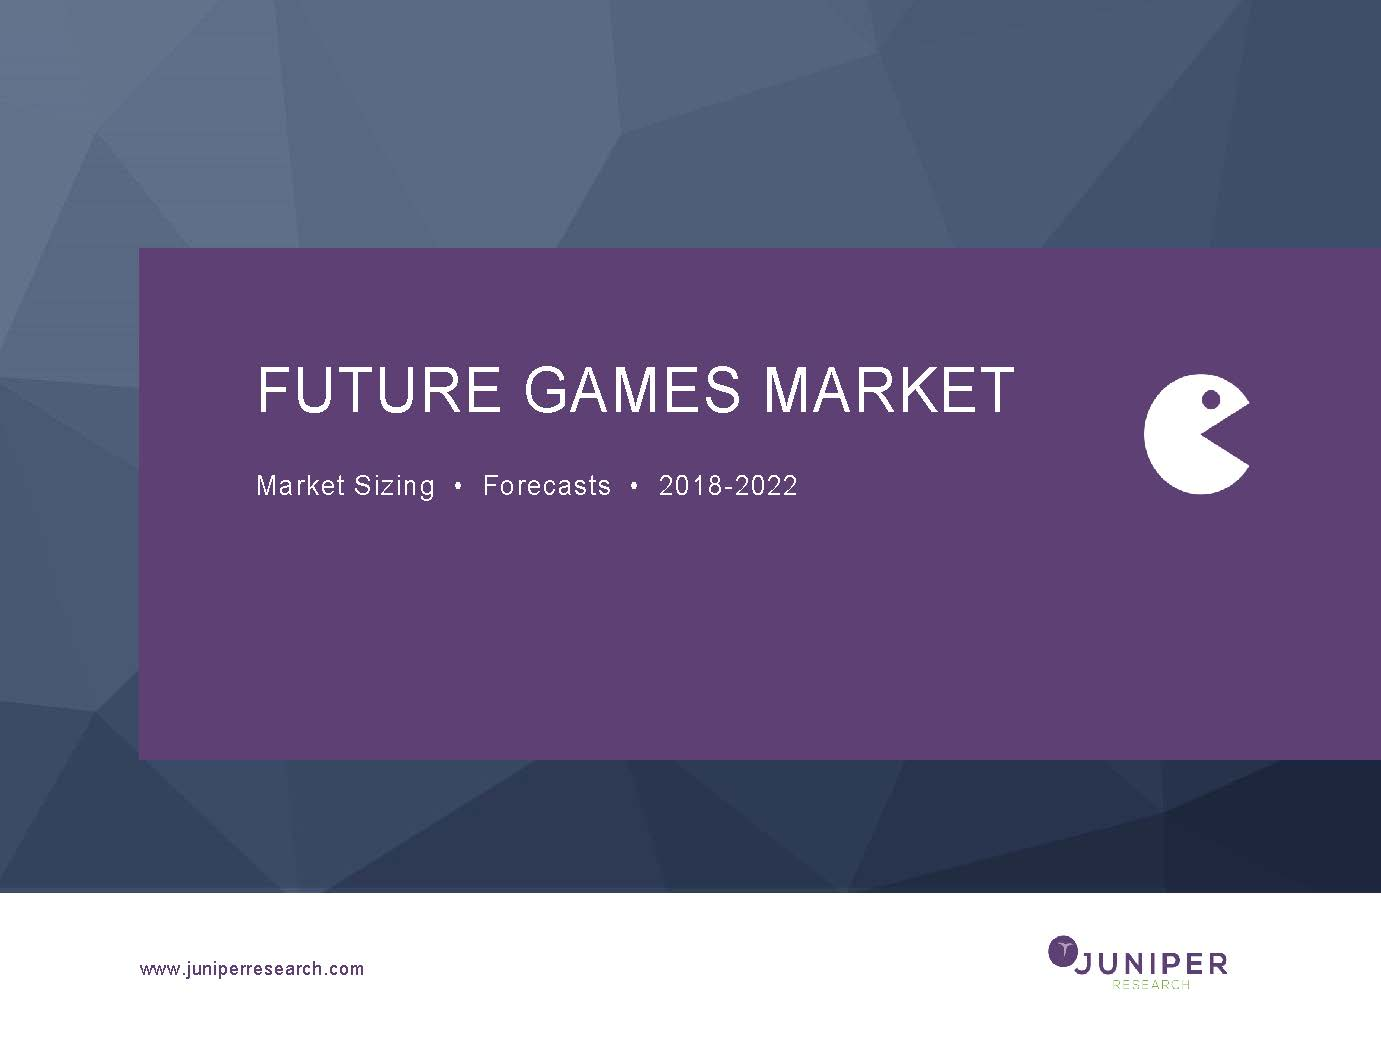 Future Games Market: Market Sizing & Forecasts 2018-2022 Full Research Suite